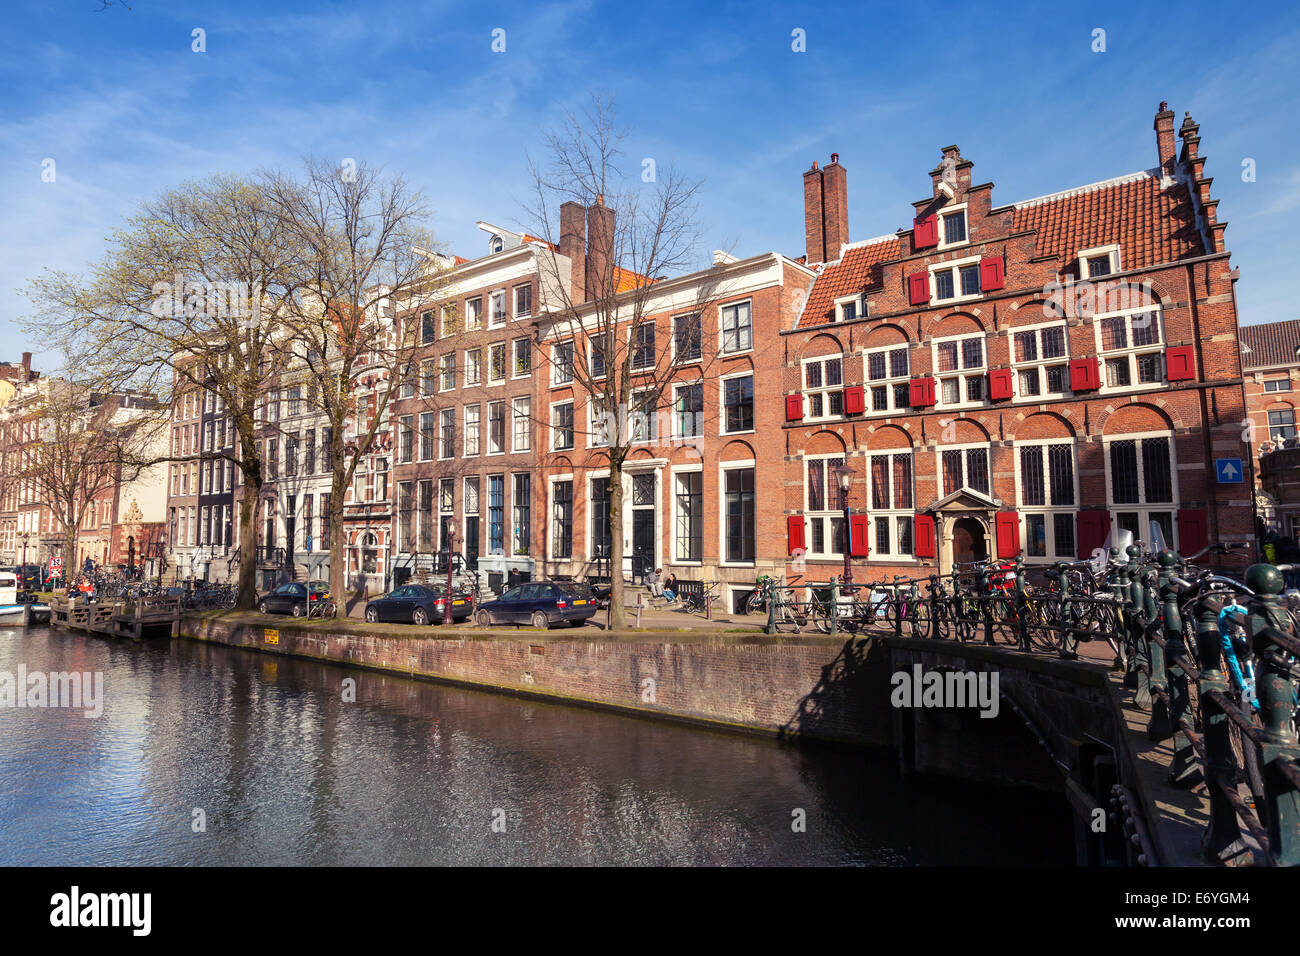 AMSTERDAM, NETHERLANDS - MARCH 19, 2014: Colorful houses along the canal embankment in spring day. Ordinary people - Stock Image